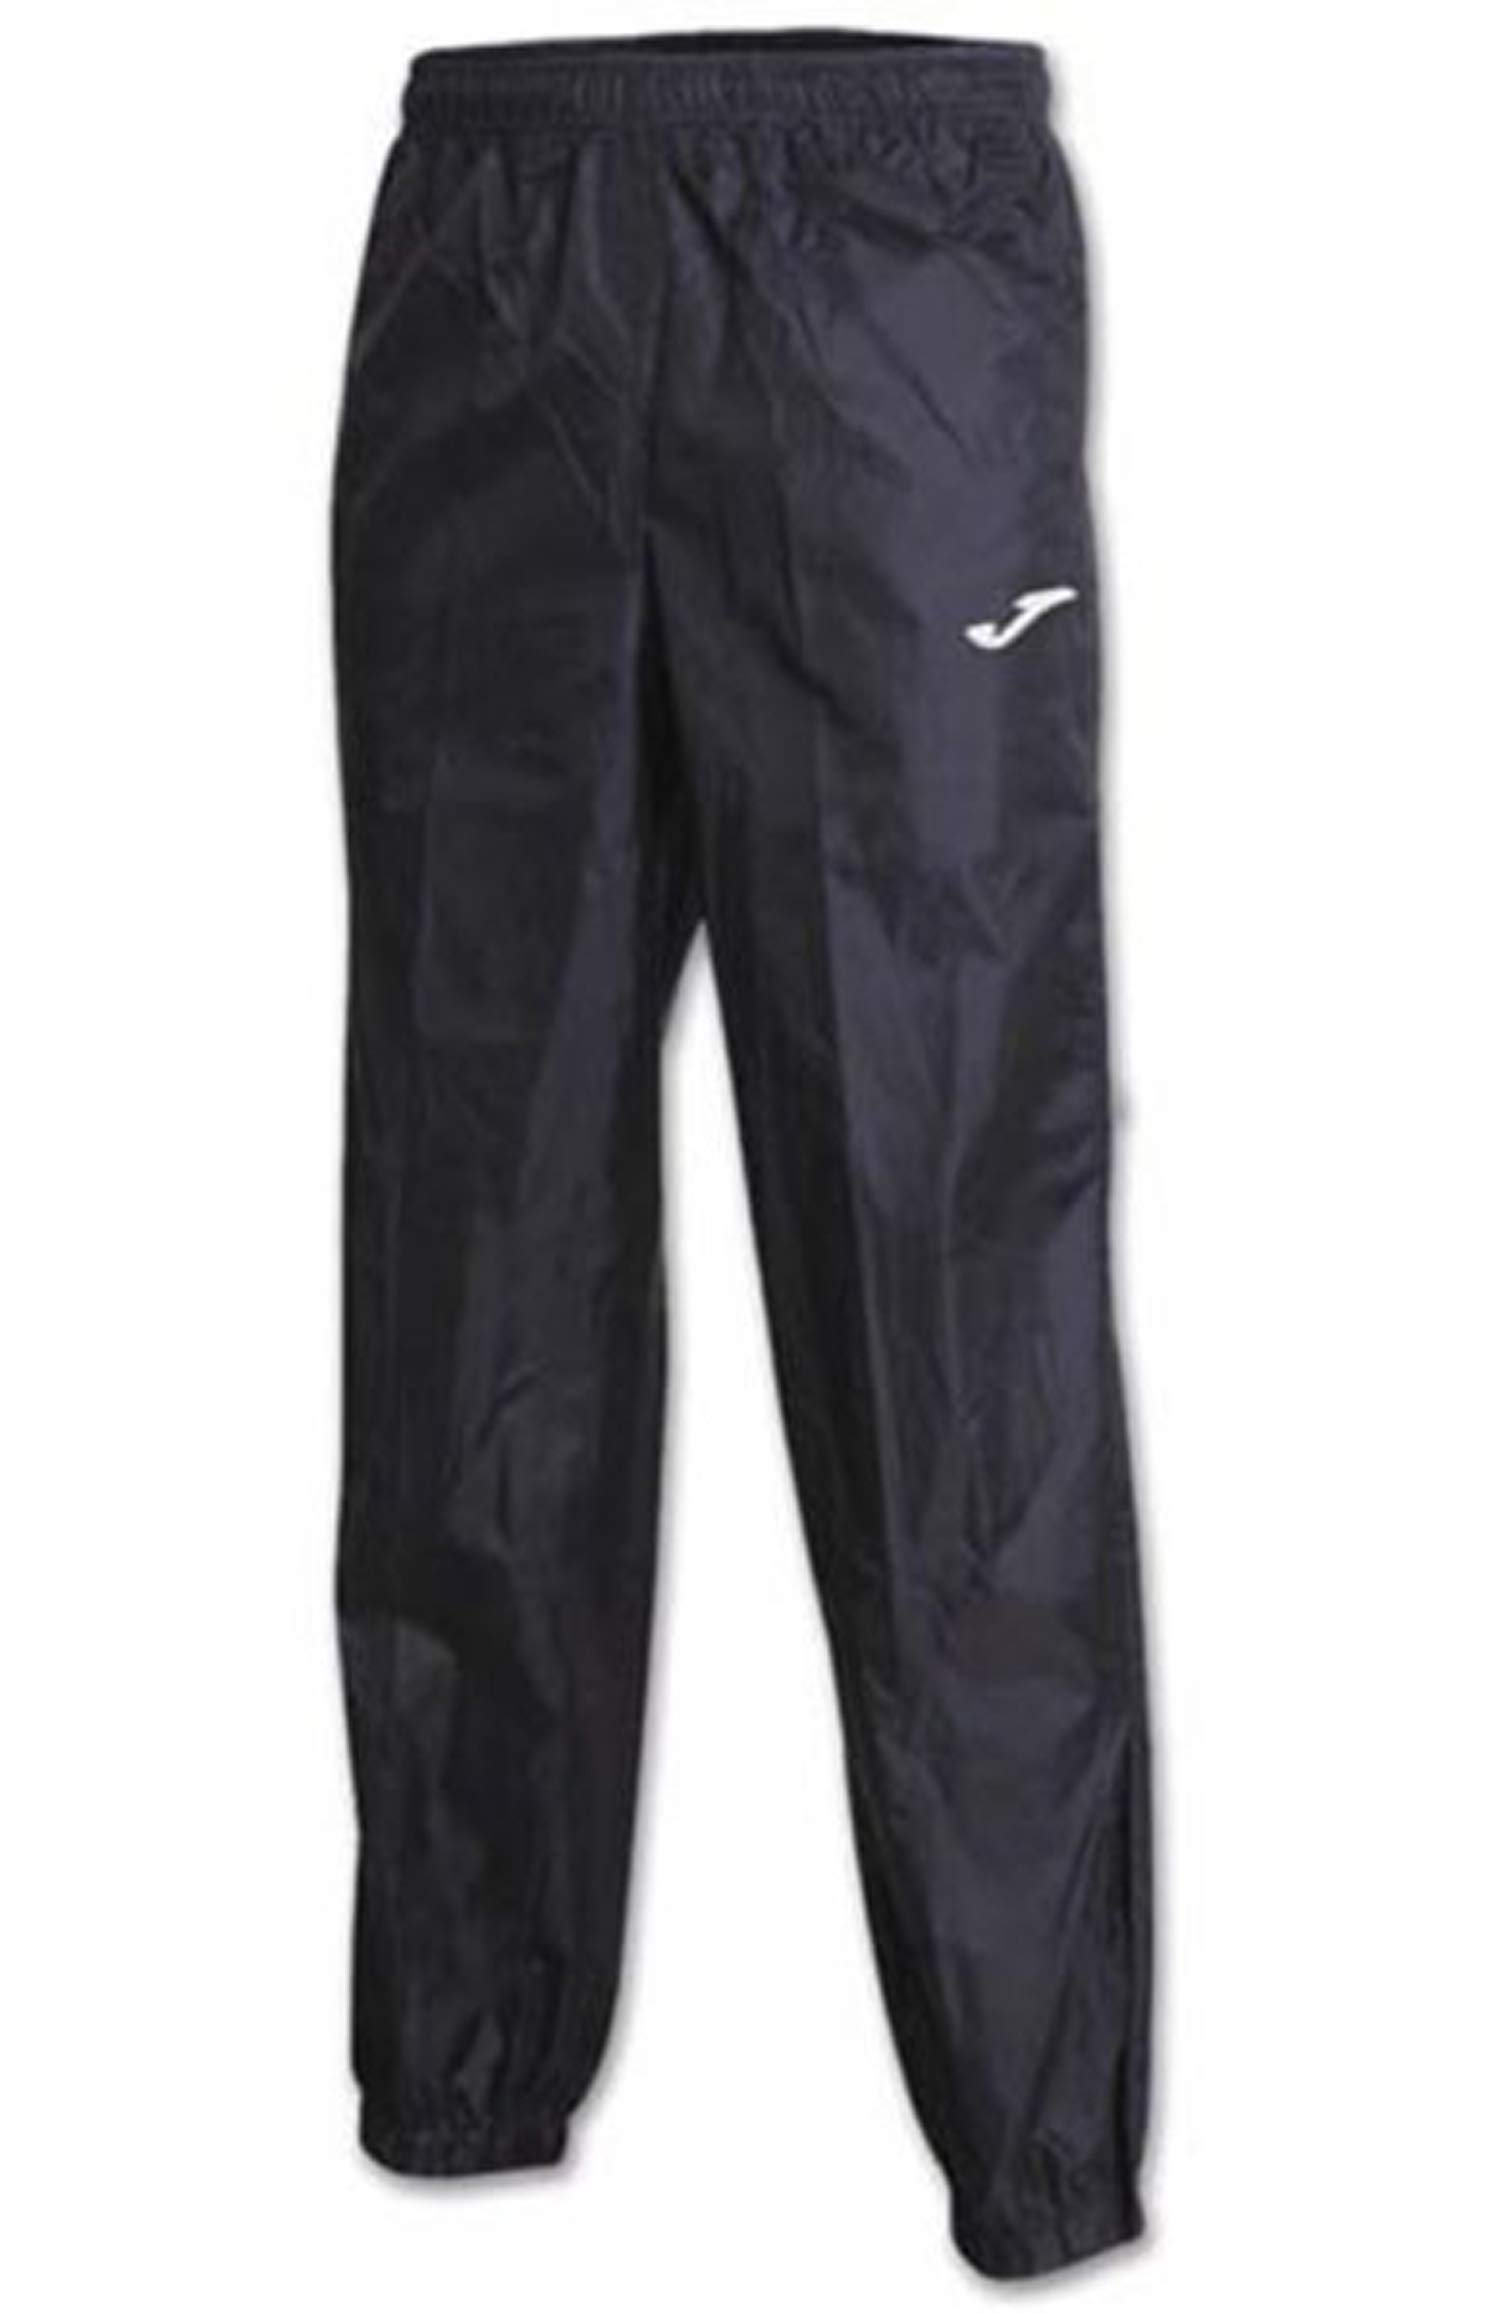 JOMA LONG PANT WATERPROOF LEEDS BLACK XL